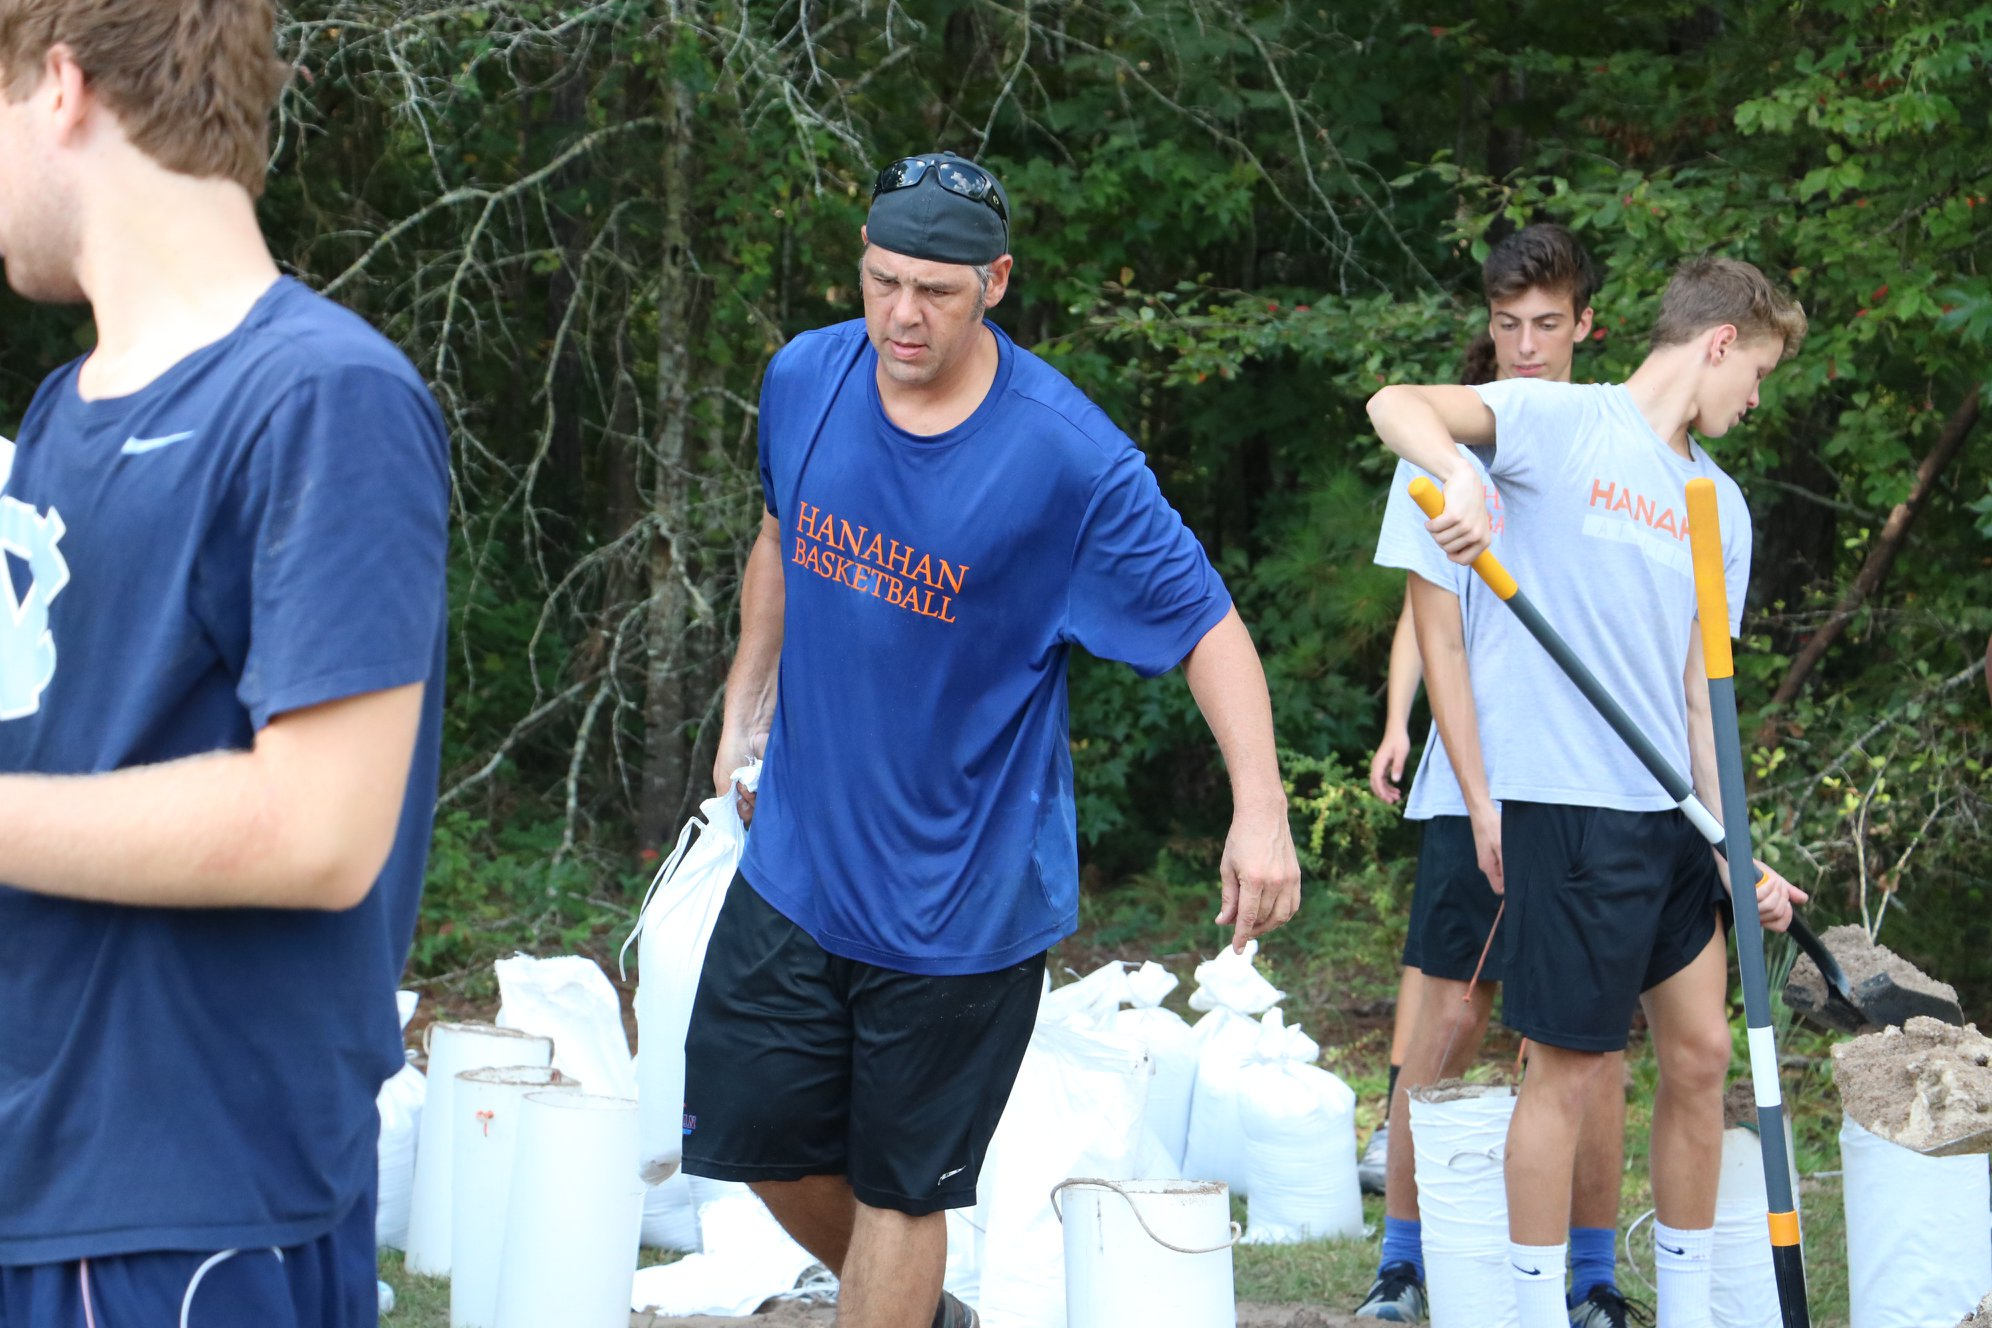 Hanahan High School student athletes and friends fill sandbags for the community in advance of Hurricane Florence. (Photo/Cyril R. Samonte)